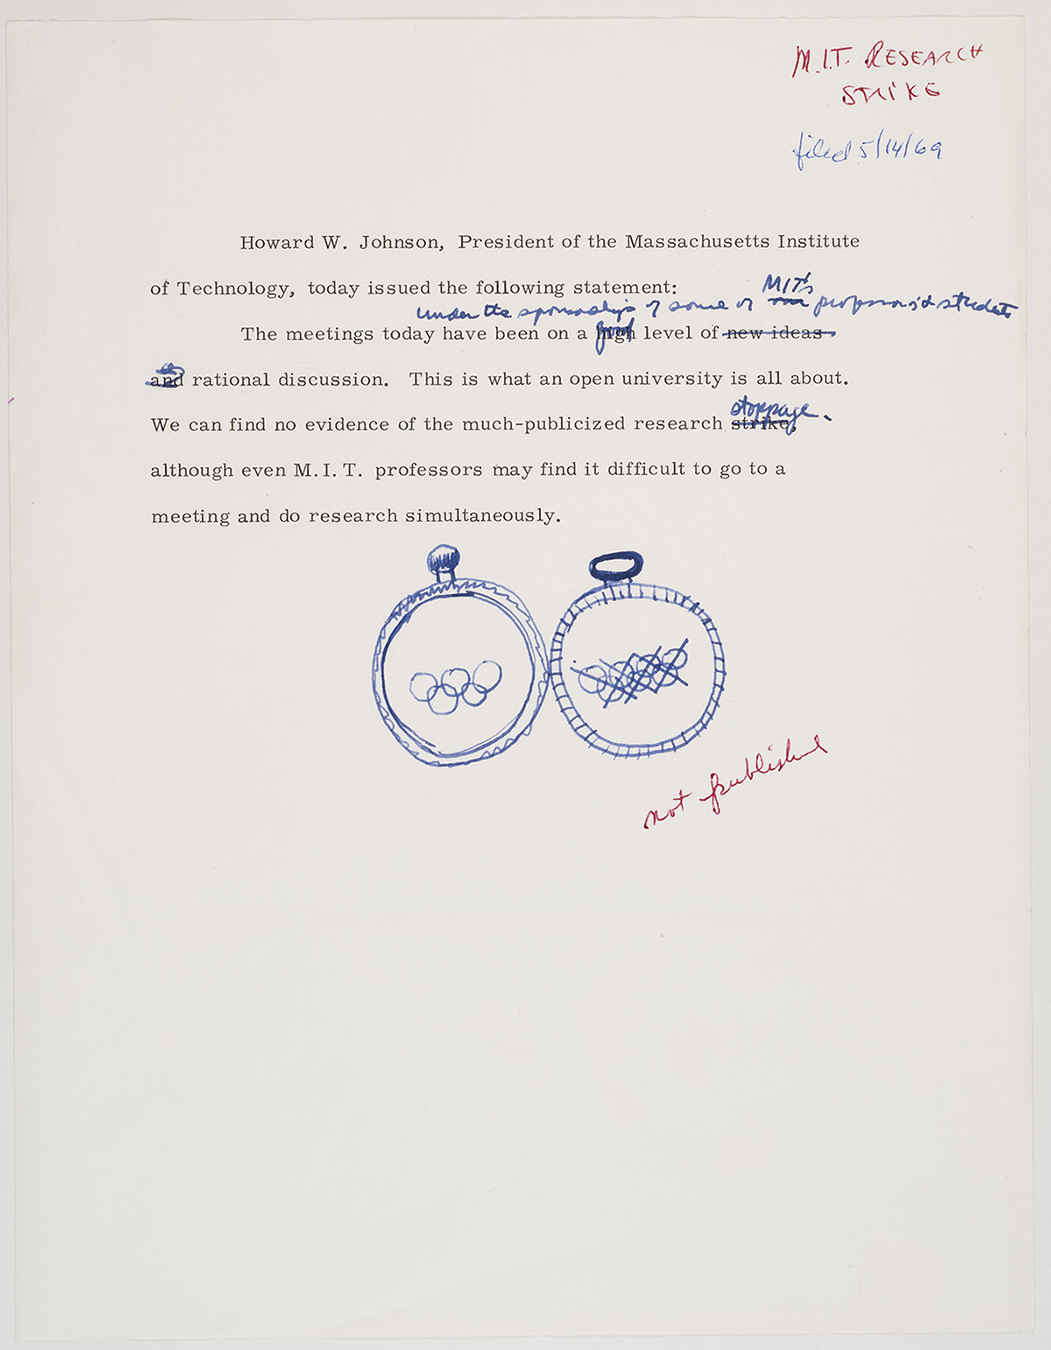 Draft statement by Howard Johnson (not published), circa March 1969, AC-0118, Box 107.